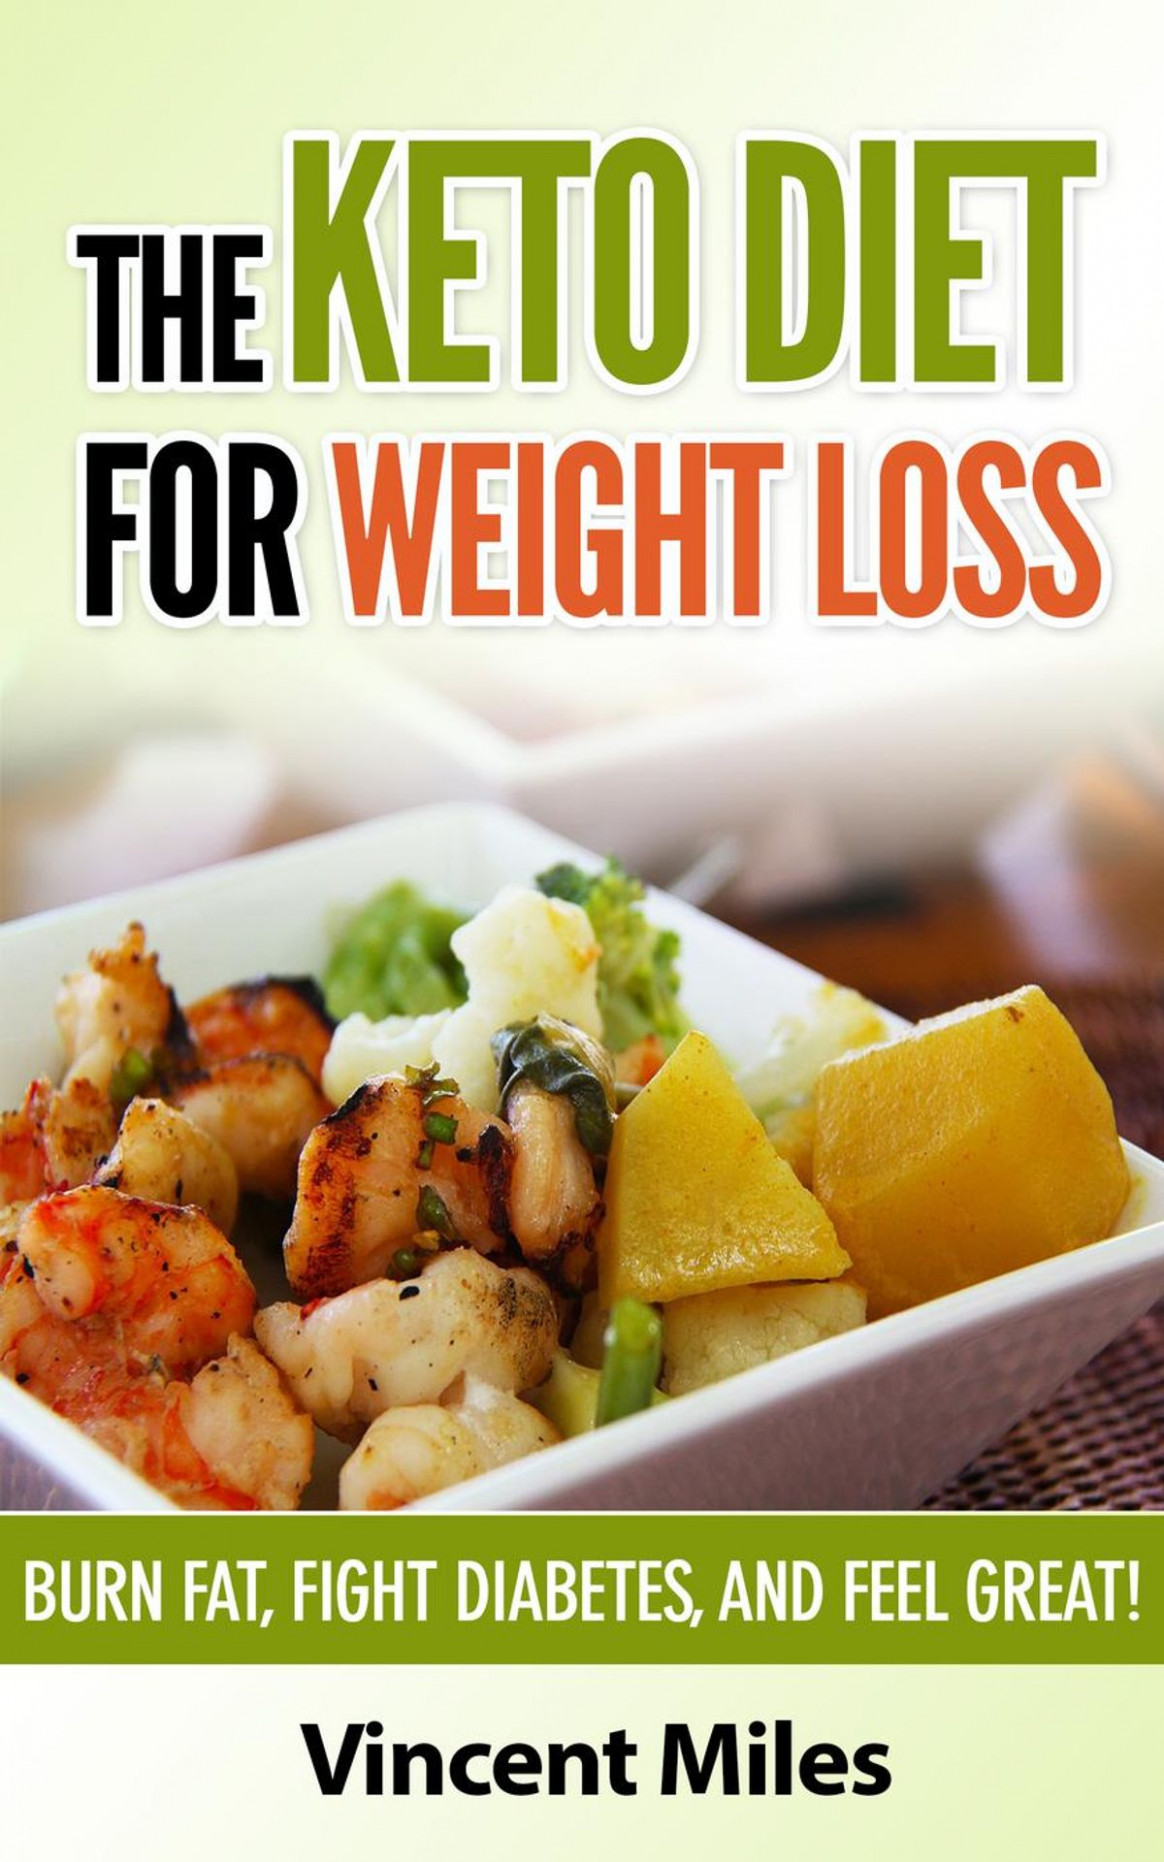 The Keto Diet For Weight Loss Ebooks By Vincent Miles - Rakuten Kobo - Diet Food Recipes For Weight Loss